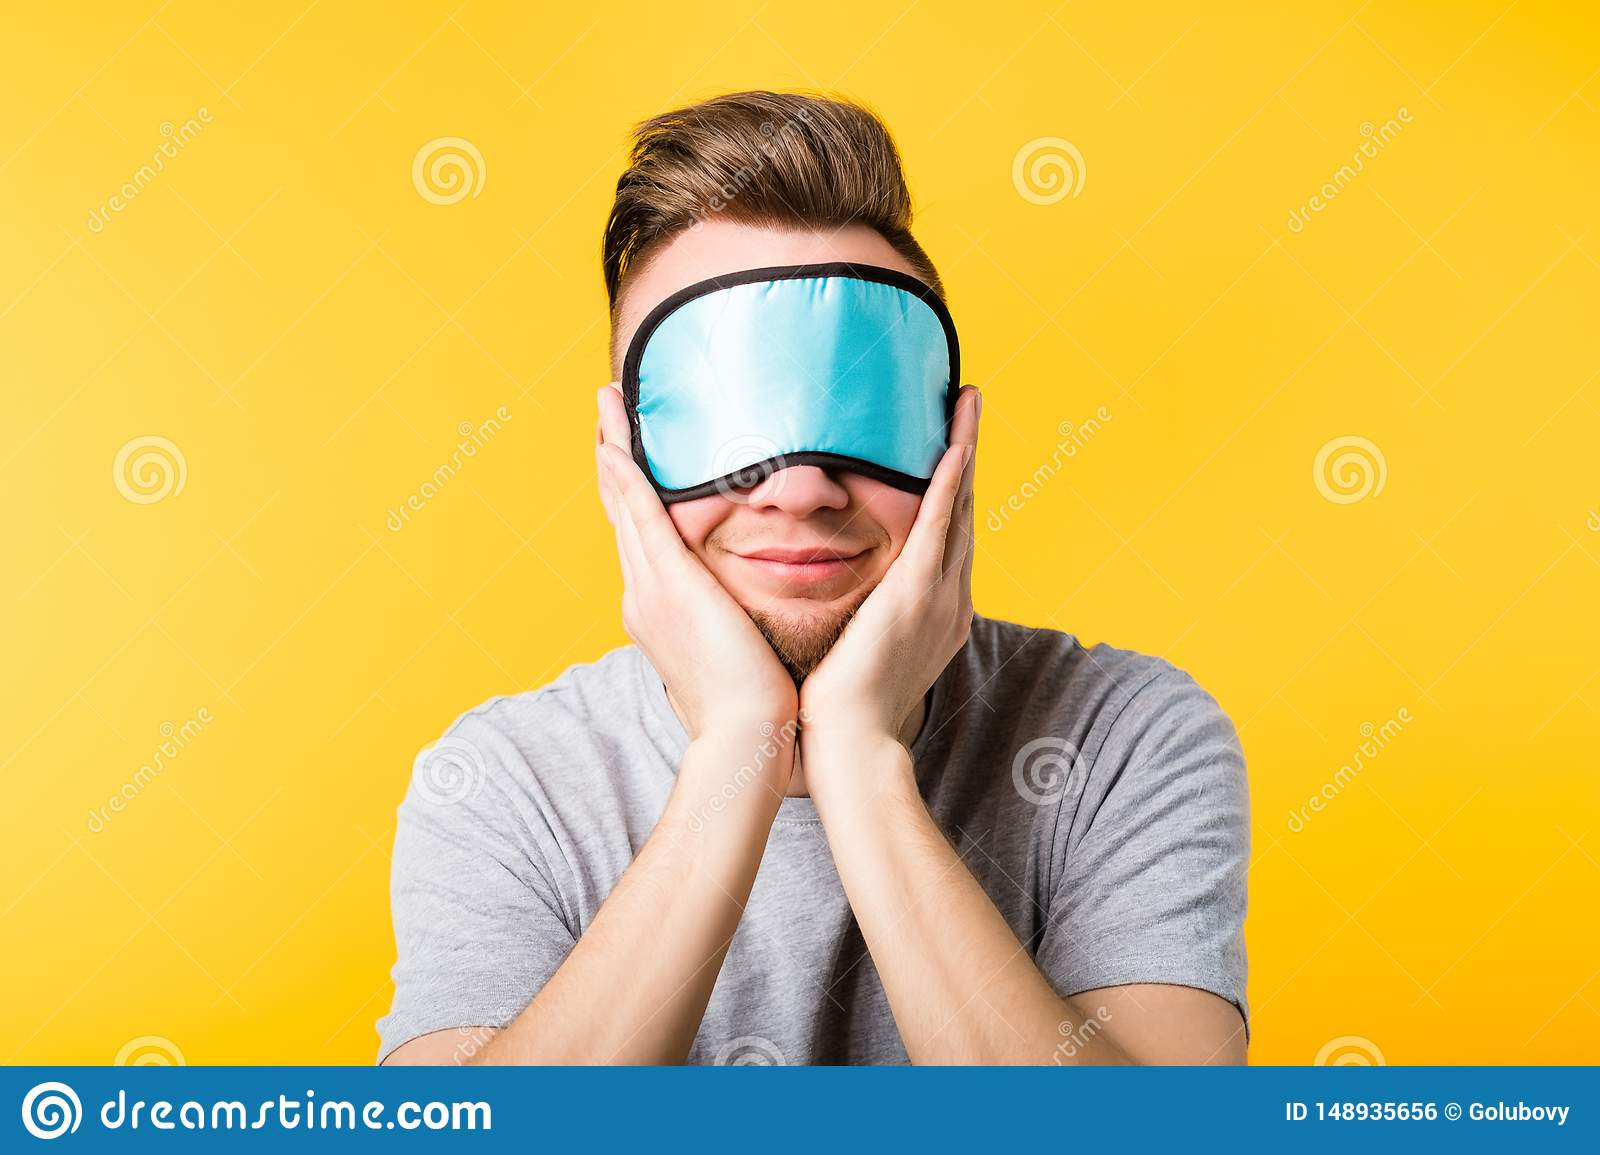 Smiling man sleep mask care relaxation rest